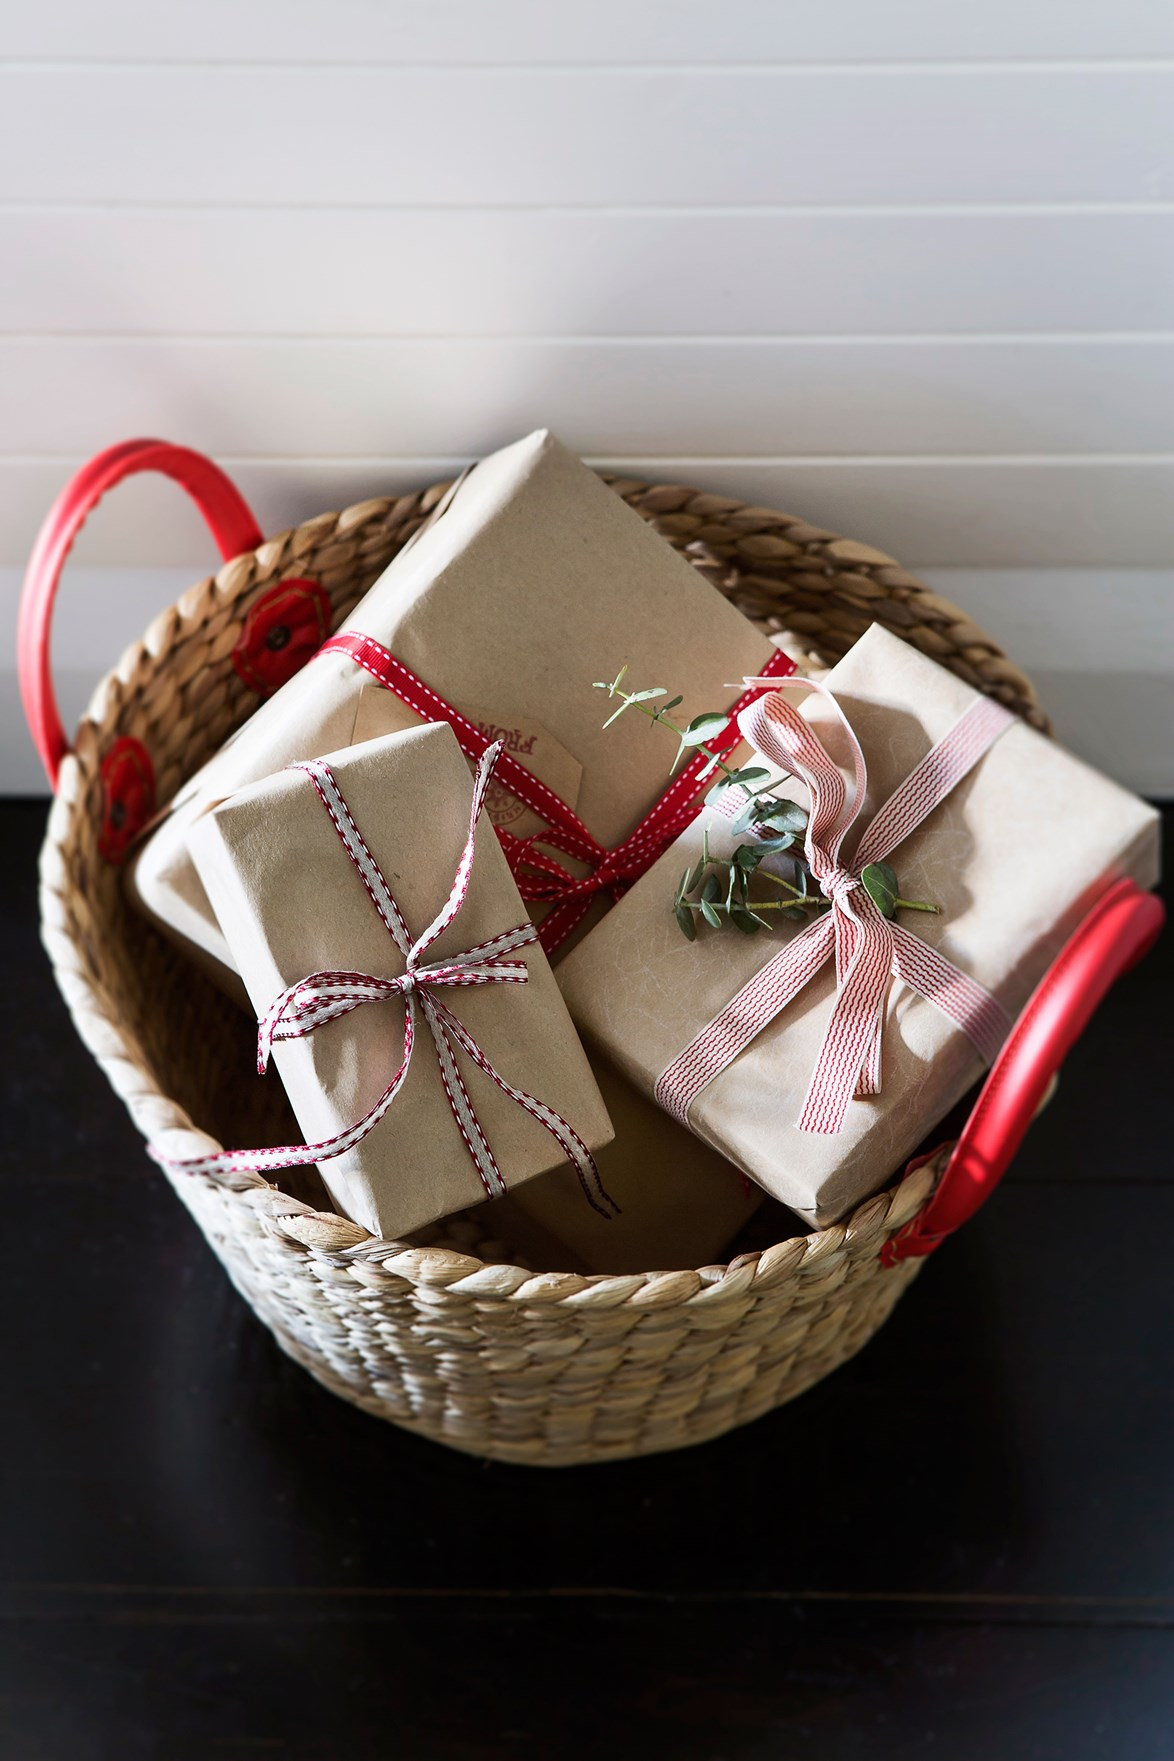 Keep a basket or bin nearby on Christmas Day to keep all the wrapping paper and packaging from covering your entire home.